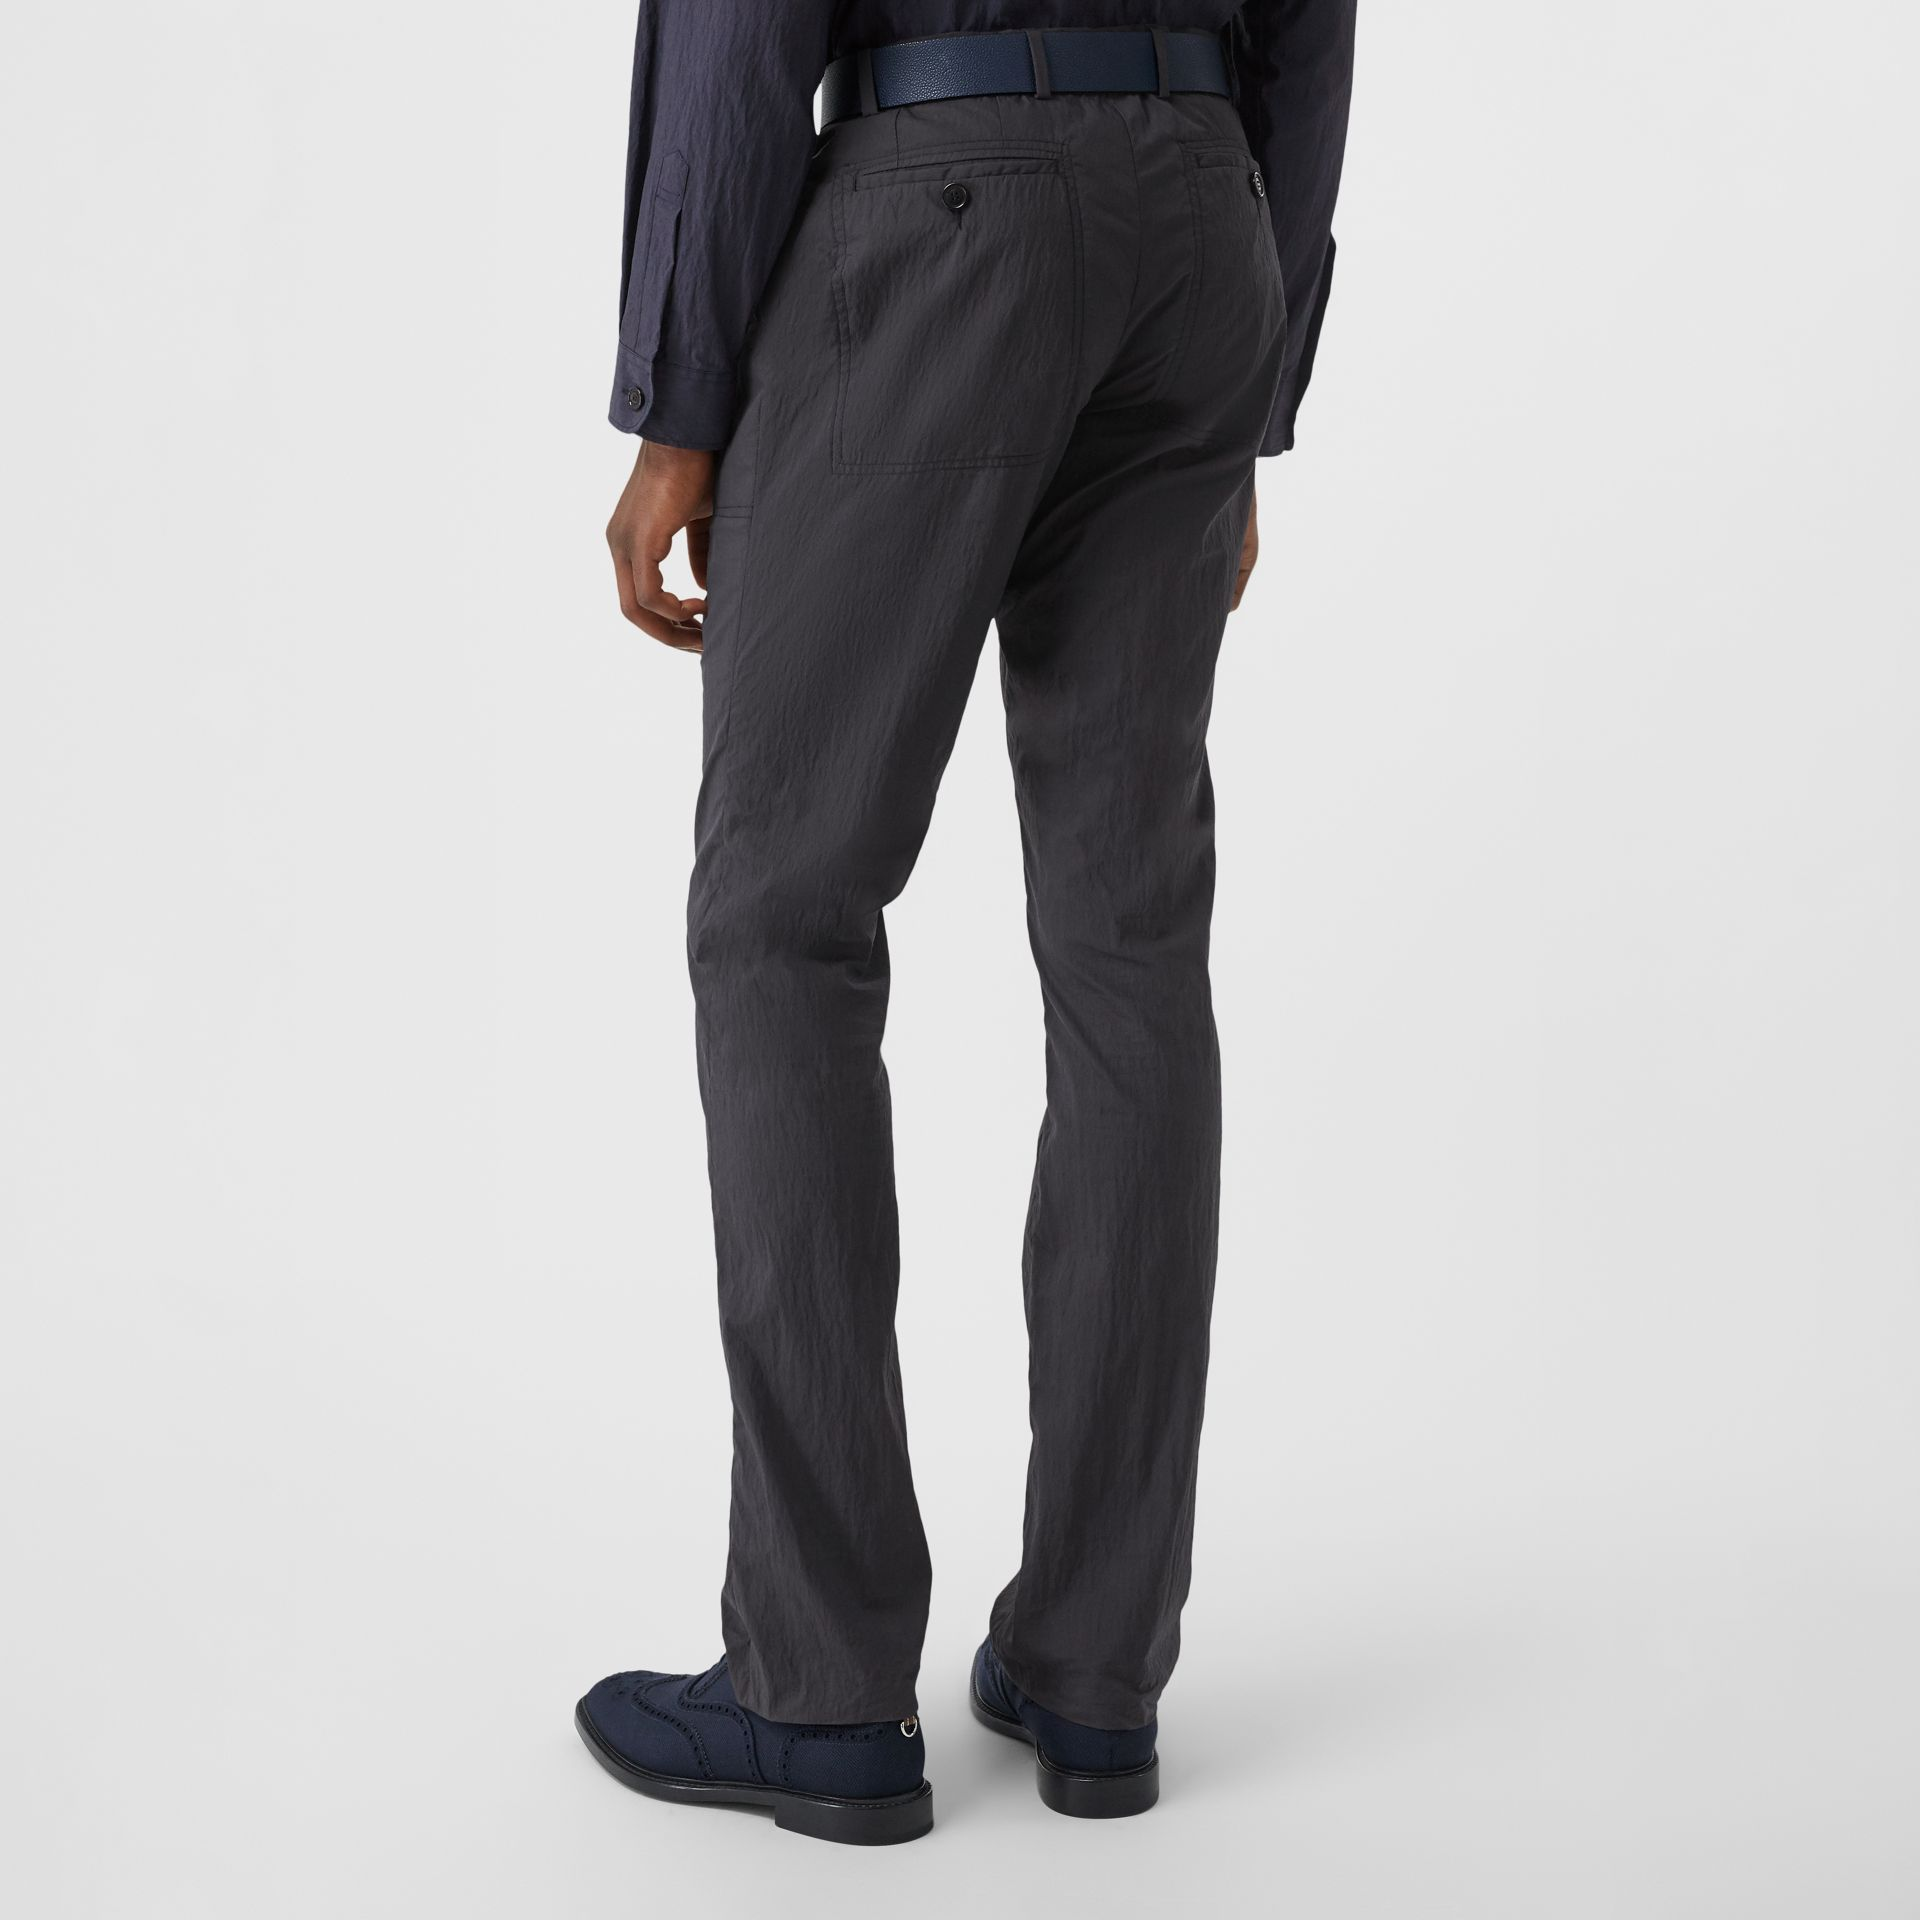 Classic Fit Cotton Blend Tailored Trousers in Navy - Men | Burberry - gallery image 2